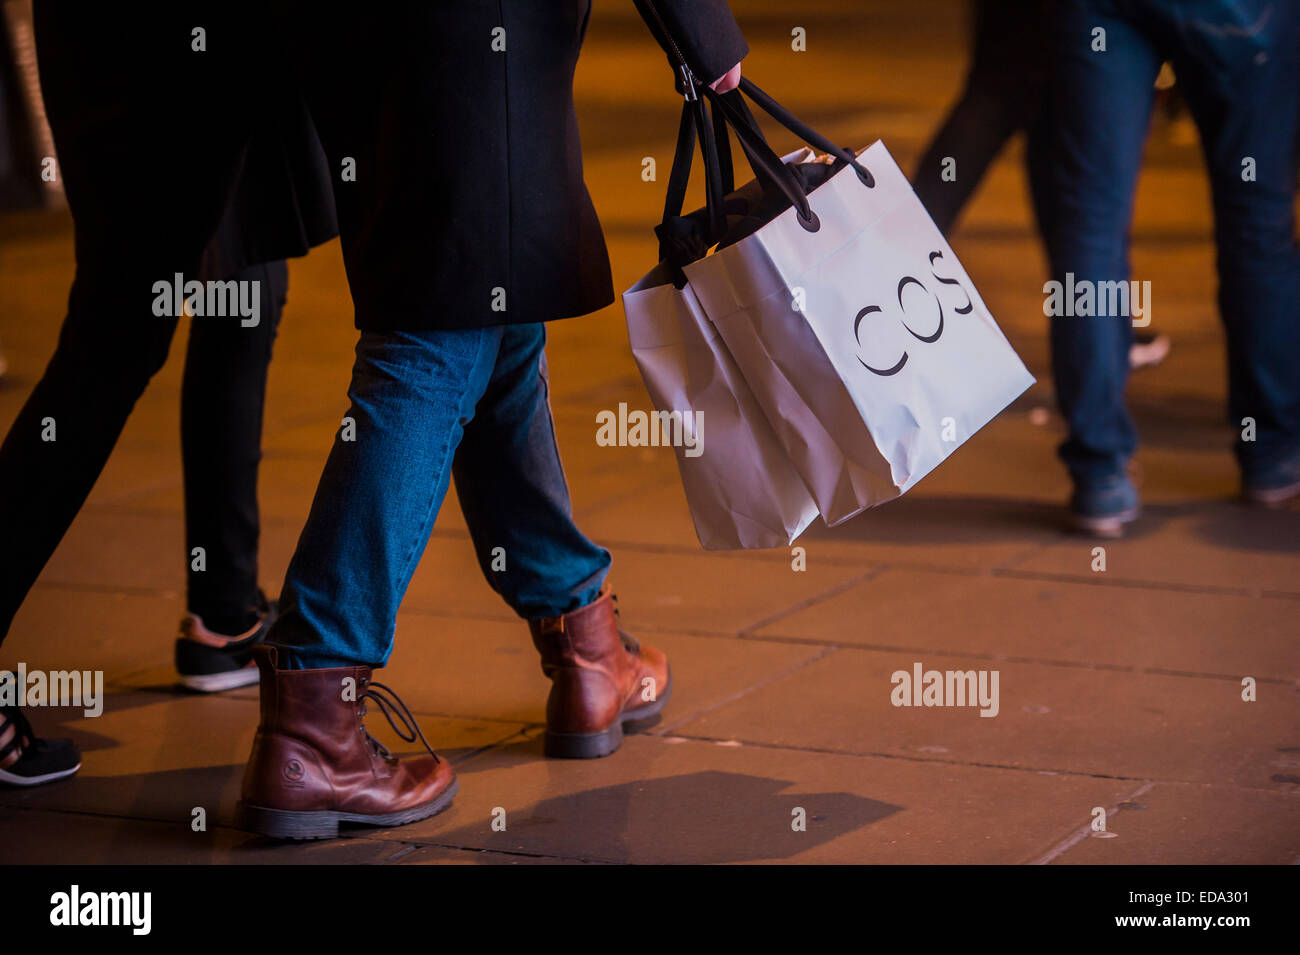 Cos Store Stock Photos & Cos Store Stock Images - Alamy